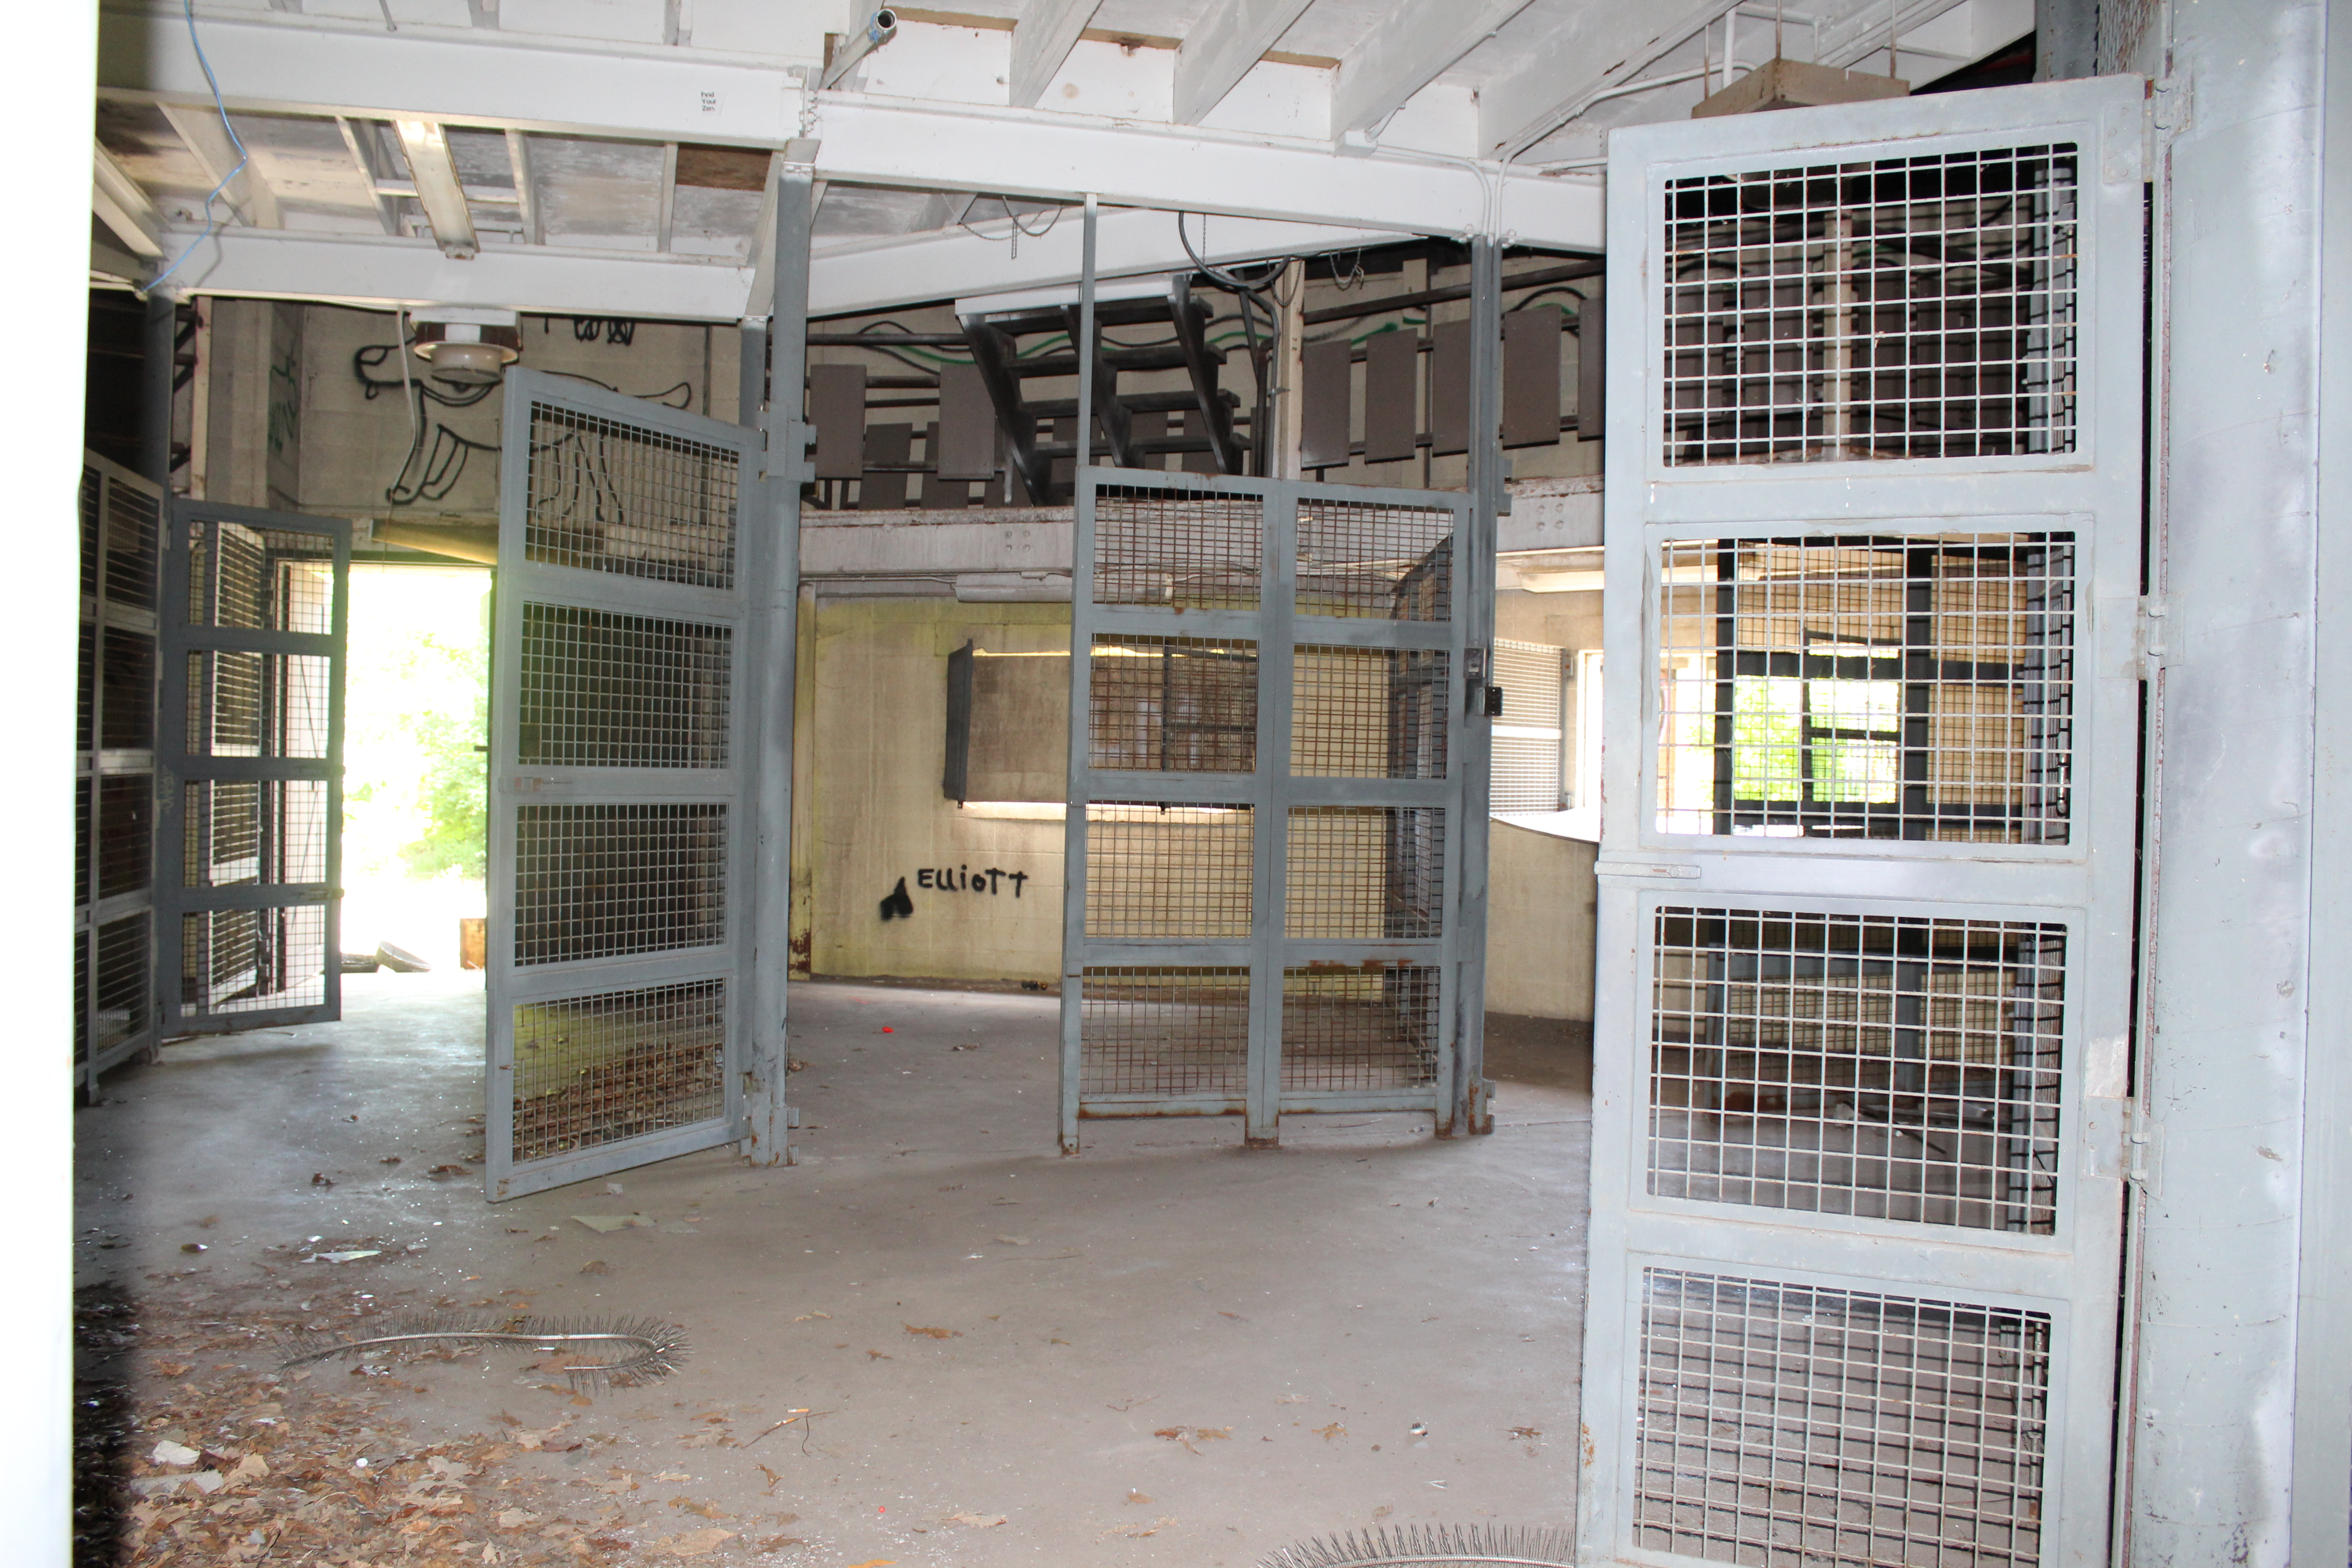 Abandoned cages inside building at Belle Isle Zoo